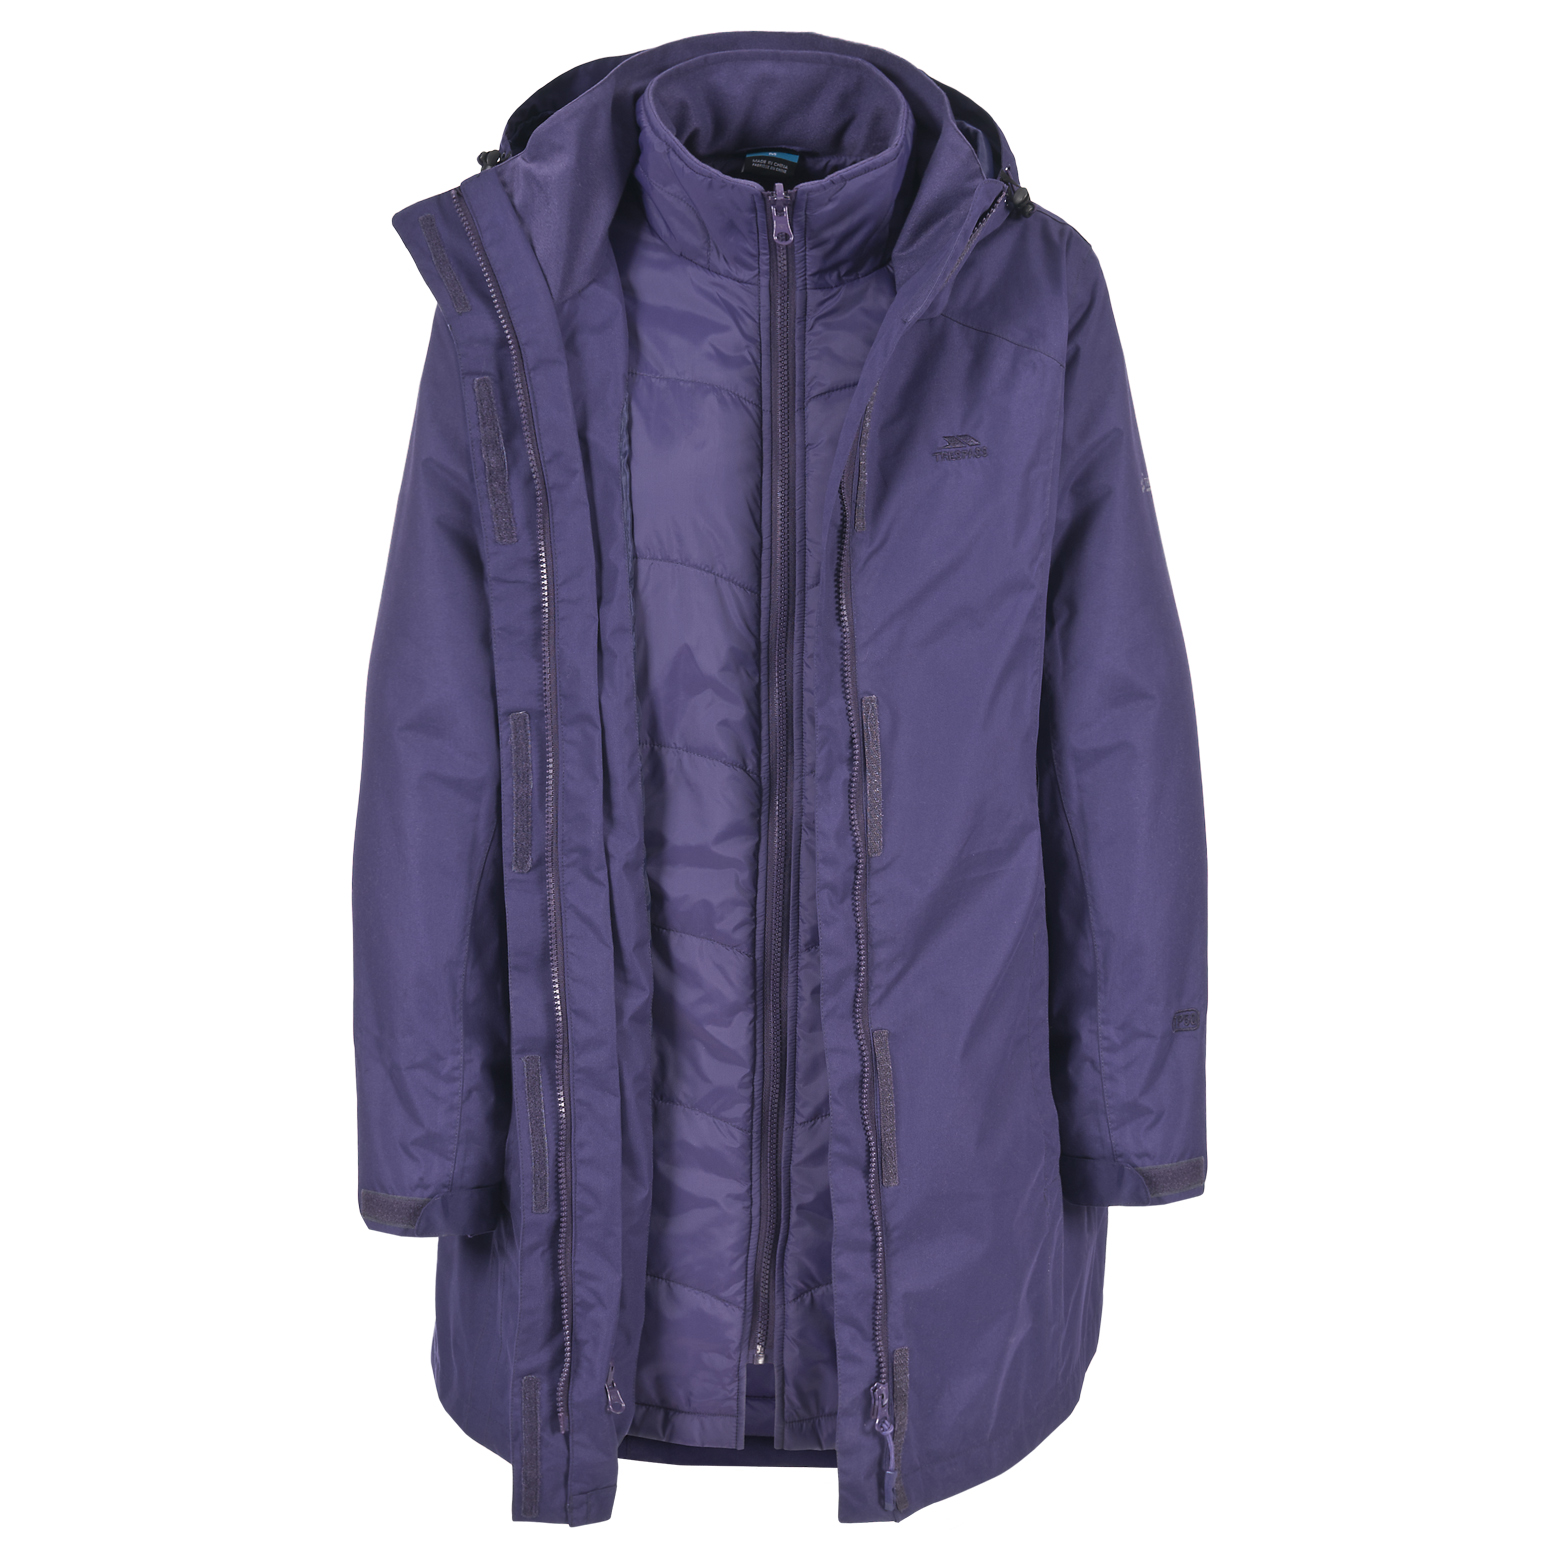 Trespass 3-in-1 Jackets. Looking for a versatile waterproof jacket, that you can wear in the spring, summer, autumn and winter? A 3-in-1 jacket will provide you with comfort and warmth, and is adaptable to your surroundings.